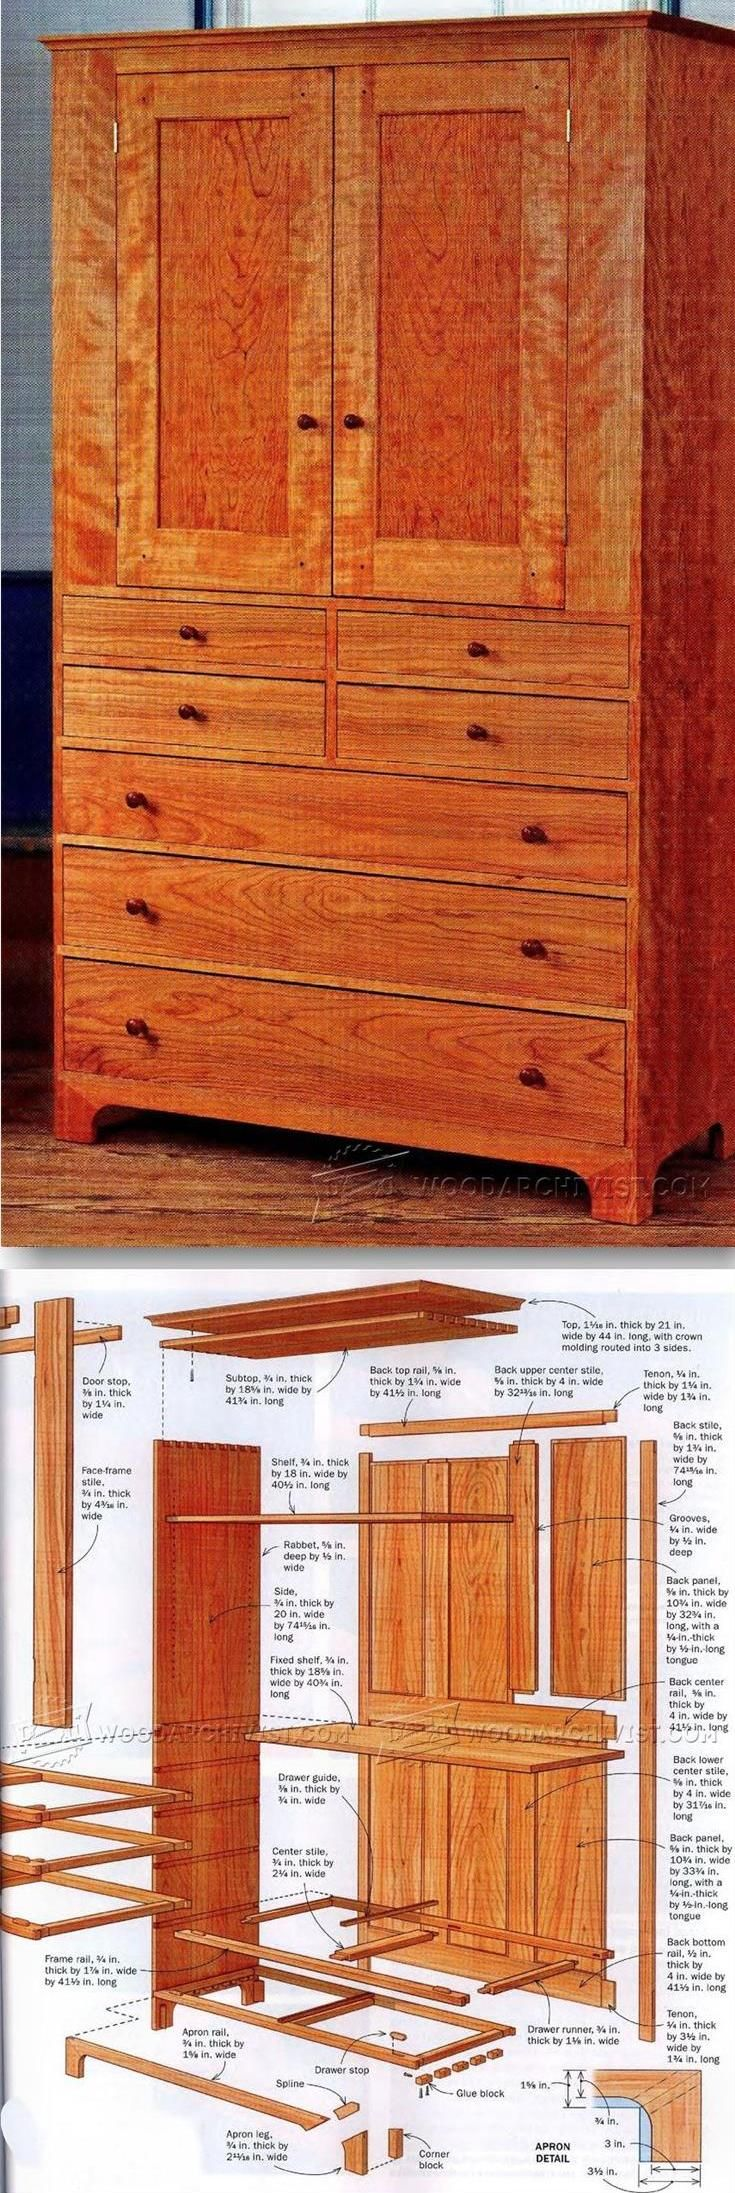 Mission style furniture plans - Find This Pin And More On Arts N Crafts Mission Style Furniture